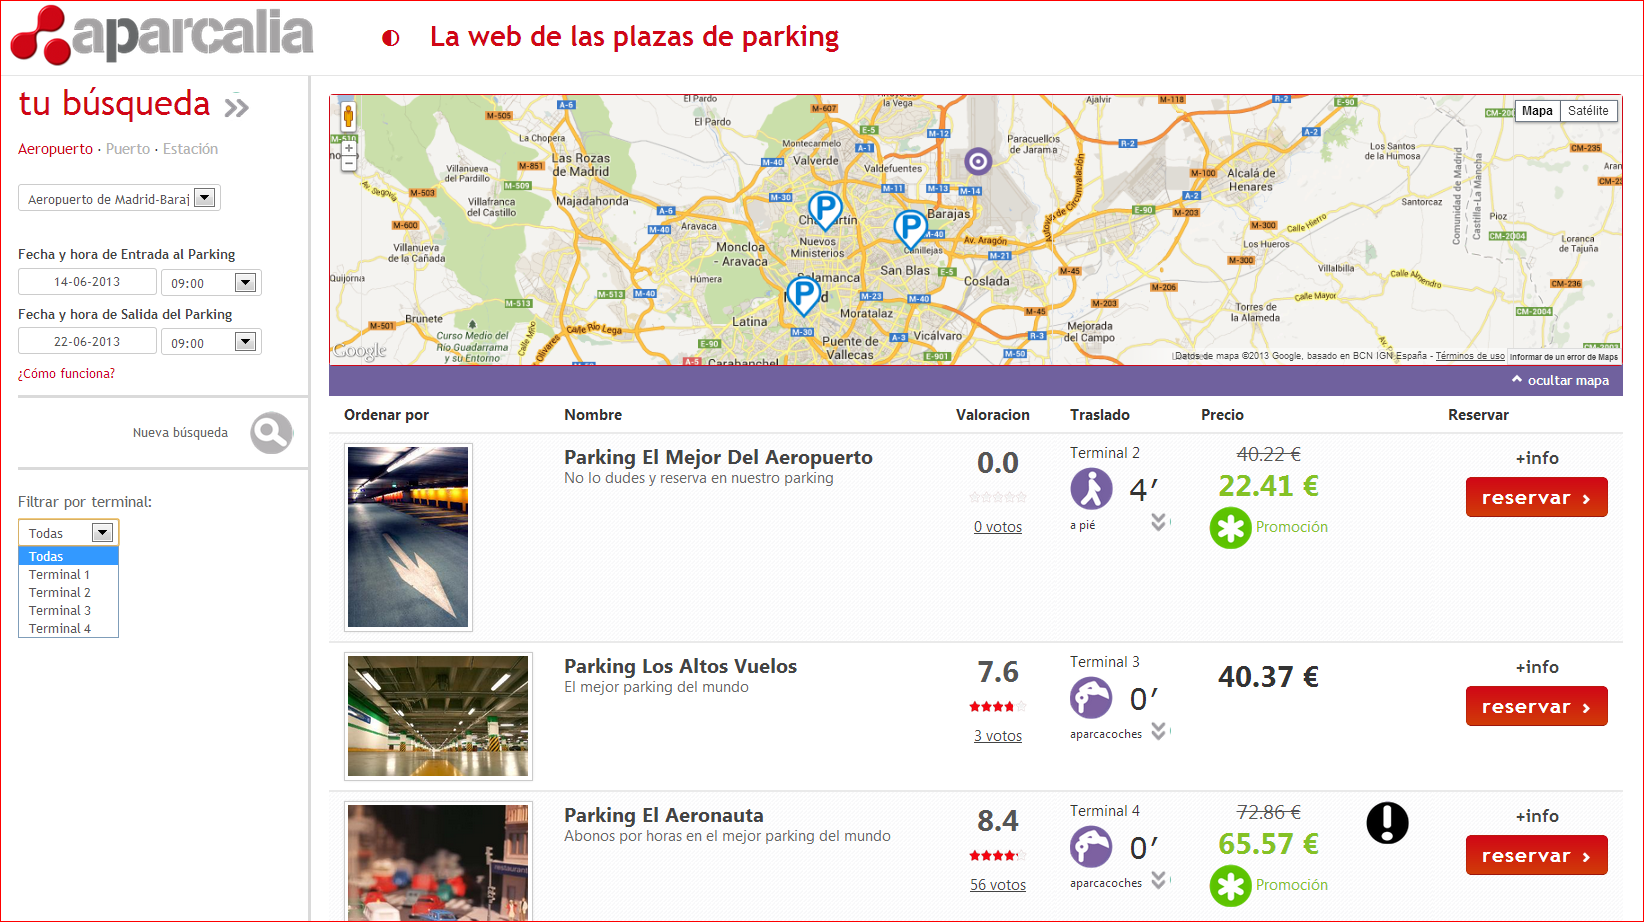 parking price comparator Aparcalia , to find long-stay car parks at airports, train stations and ports